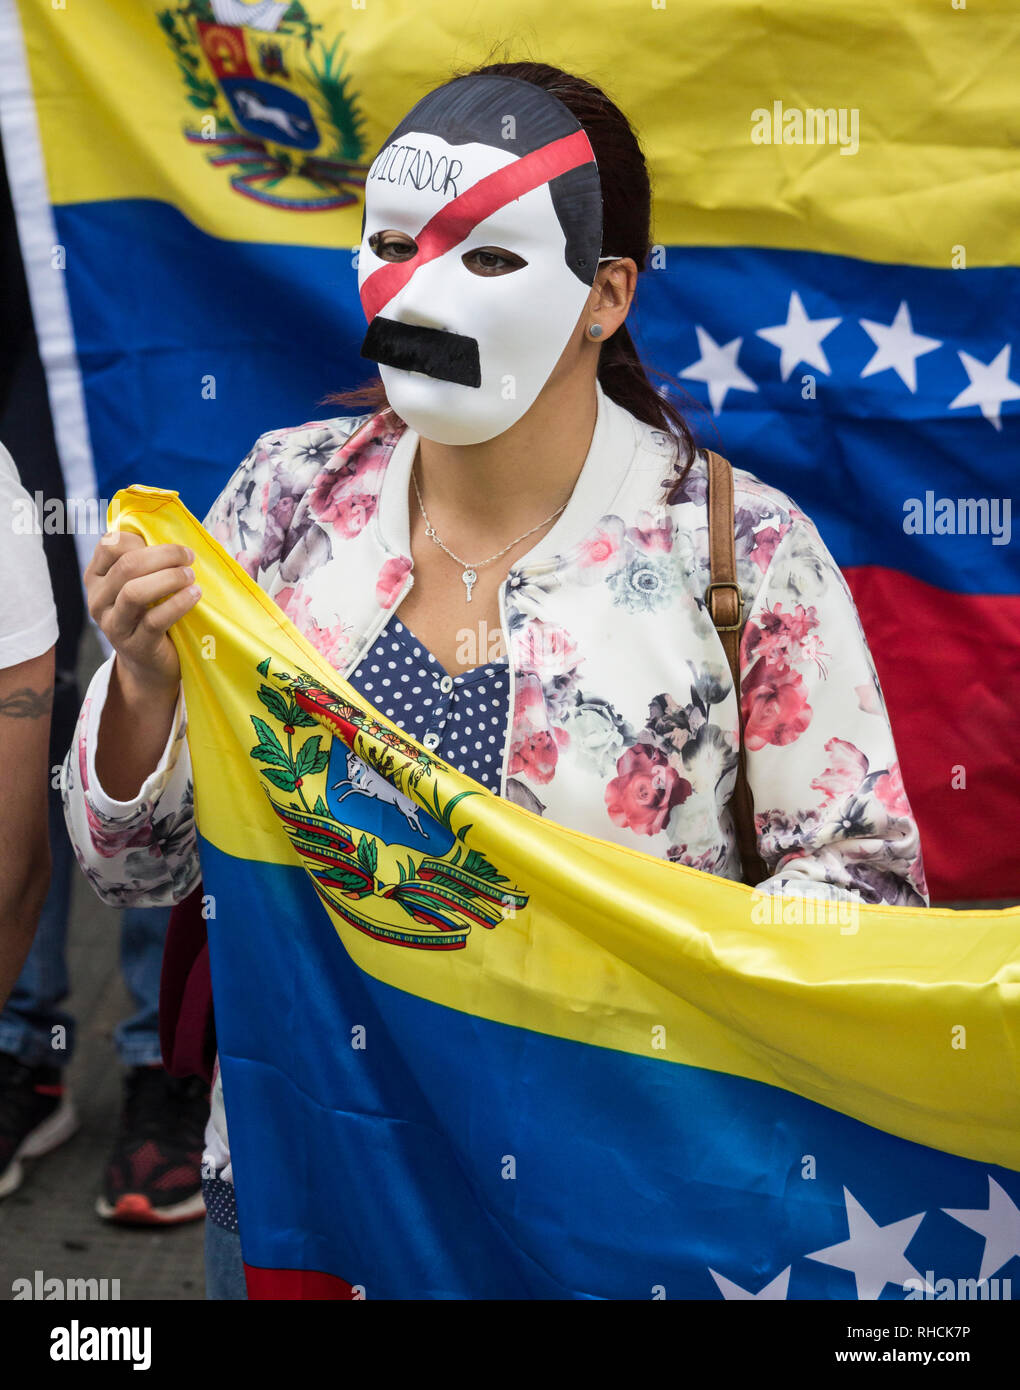 Las Palmas, Gran Canaria, Canary Islands, Spain. 2nd February 2019. Venezuelans living in the Canary Islands join thousands of fellow Venezuelans around the world calling for Nicolas Maduro to step down. PICTURED: A demonstrator wears a Nicolas Maduro mask with Dictator written on it. Credit: ALAN DAWSON/Alamy Live News - Stock Image